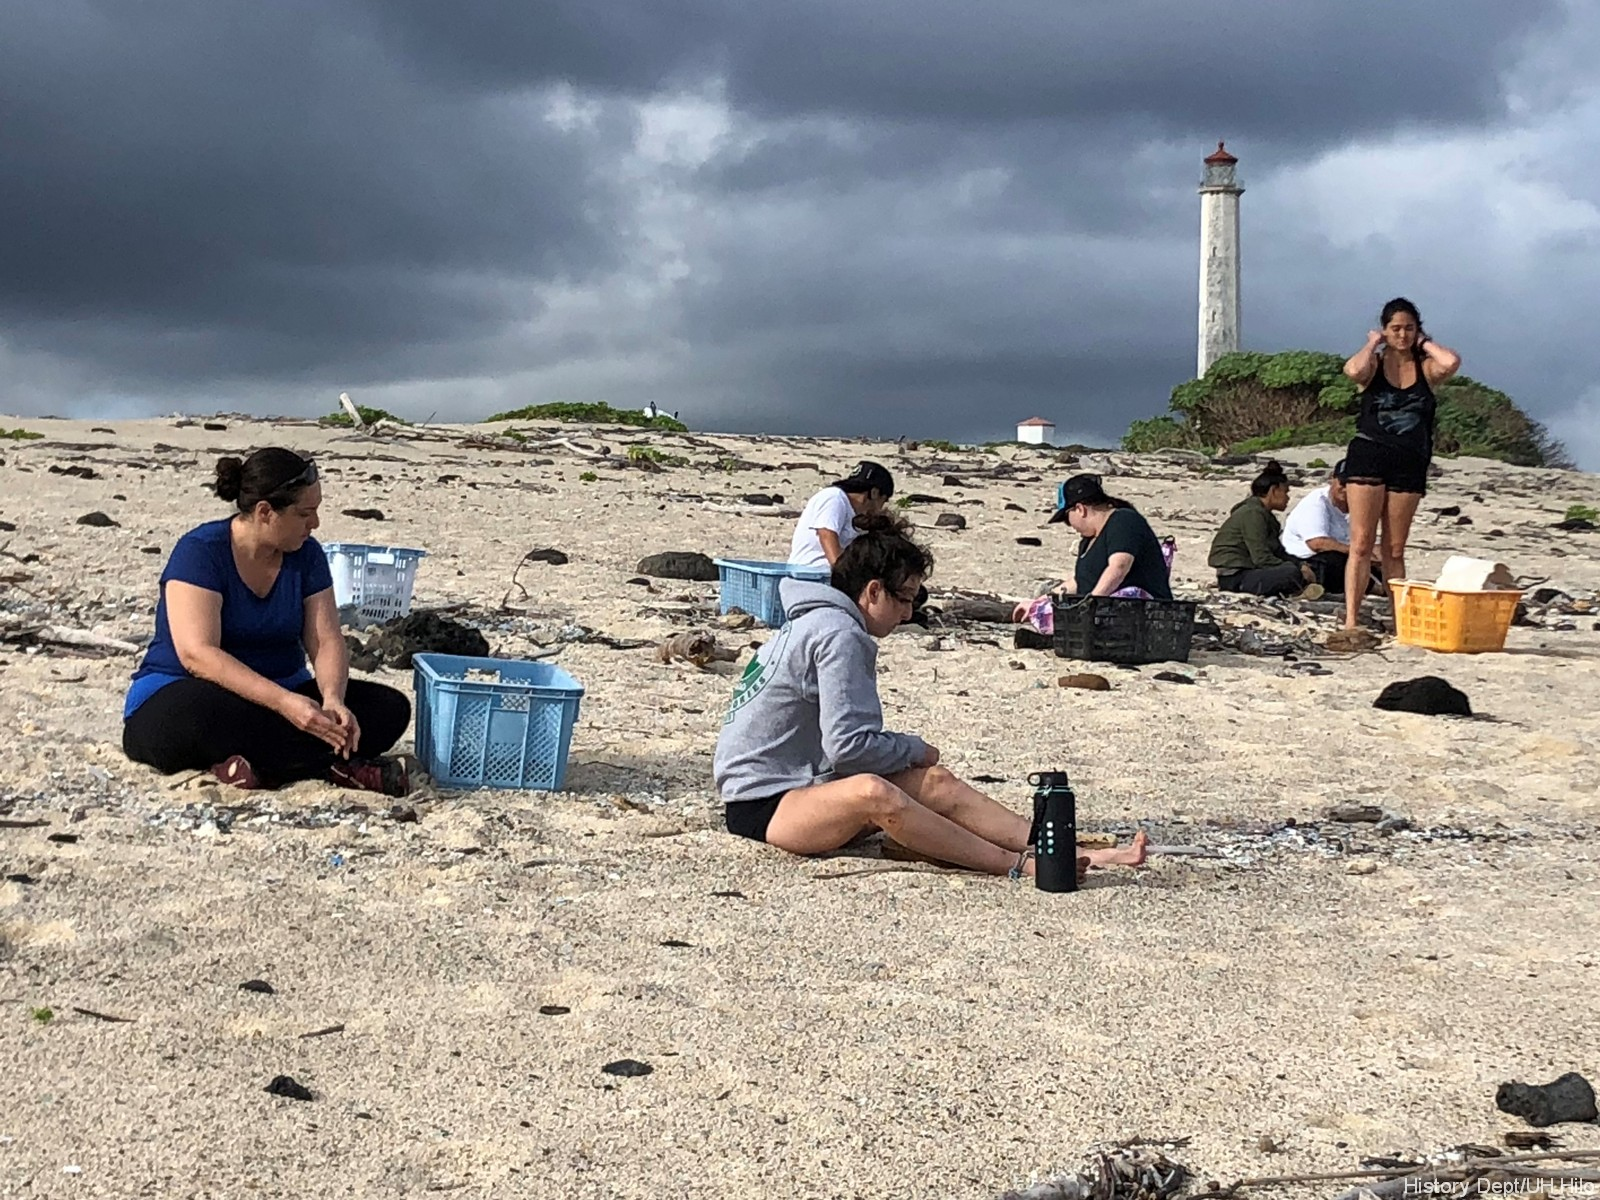 Students seated on beach sifting through sand. Lighthouse is in the background.